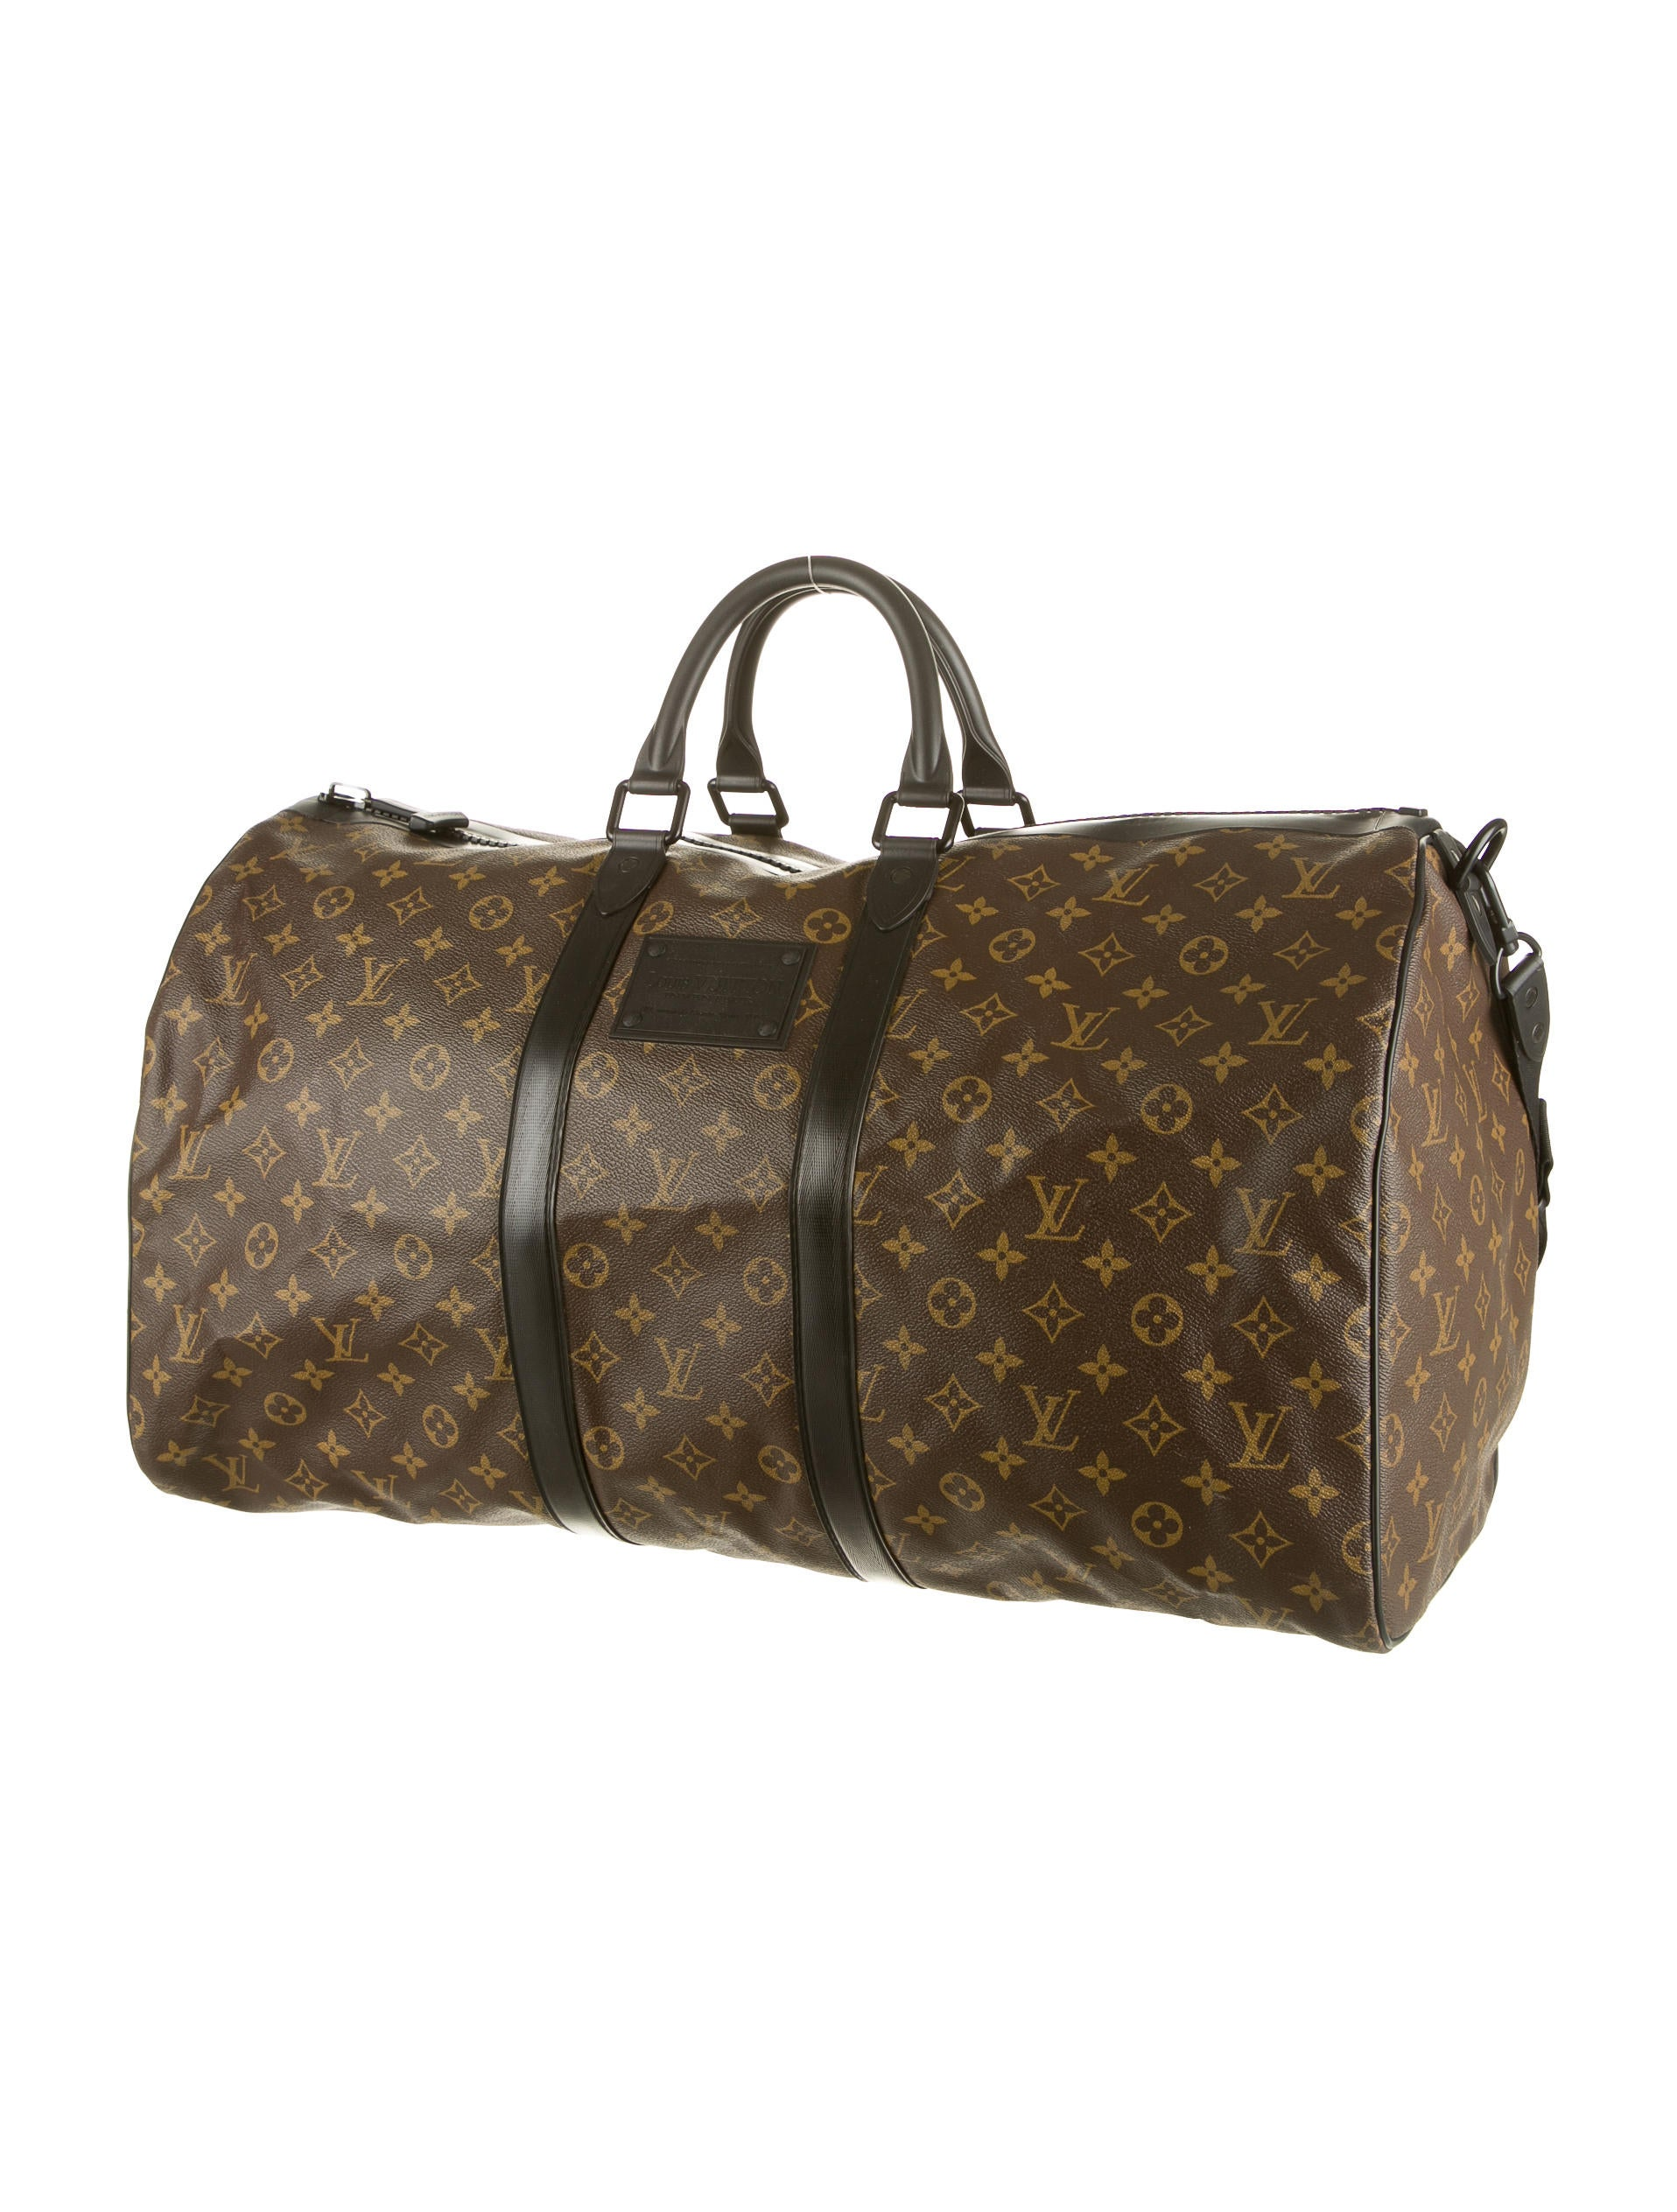 louis vuitton waterproof keepall 55 luggage lou37530. Black Bedroom Furniture Sets. Home Design Ideas